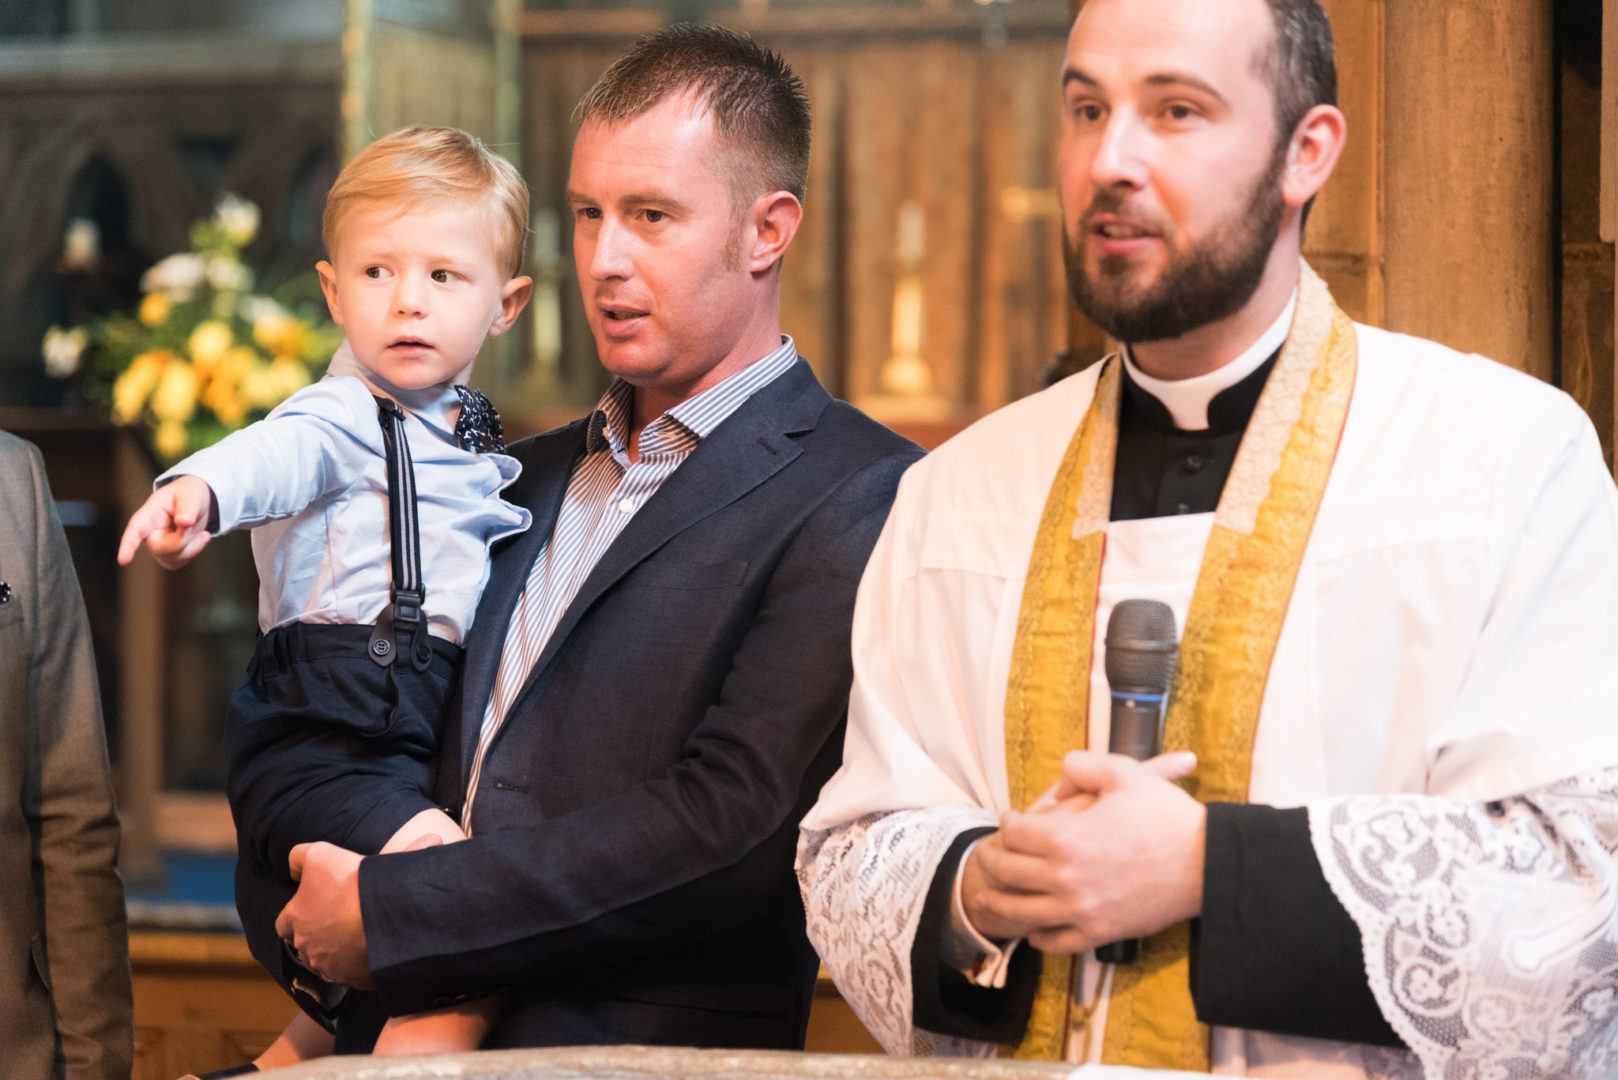 St Mary's church Christening by Nuneaton photographer AJtImages